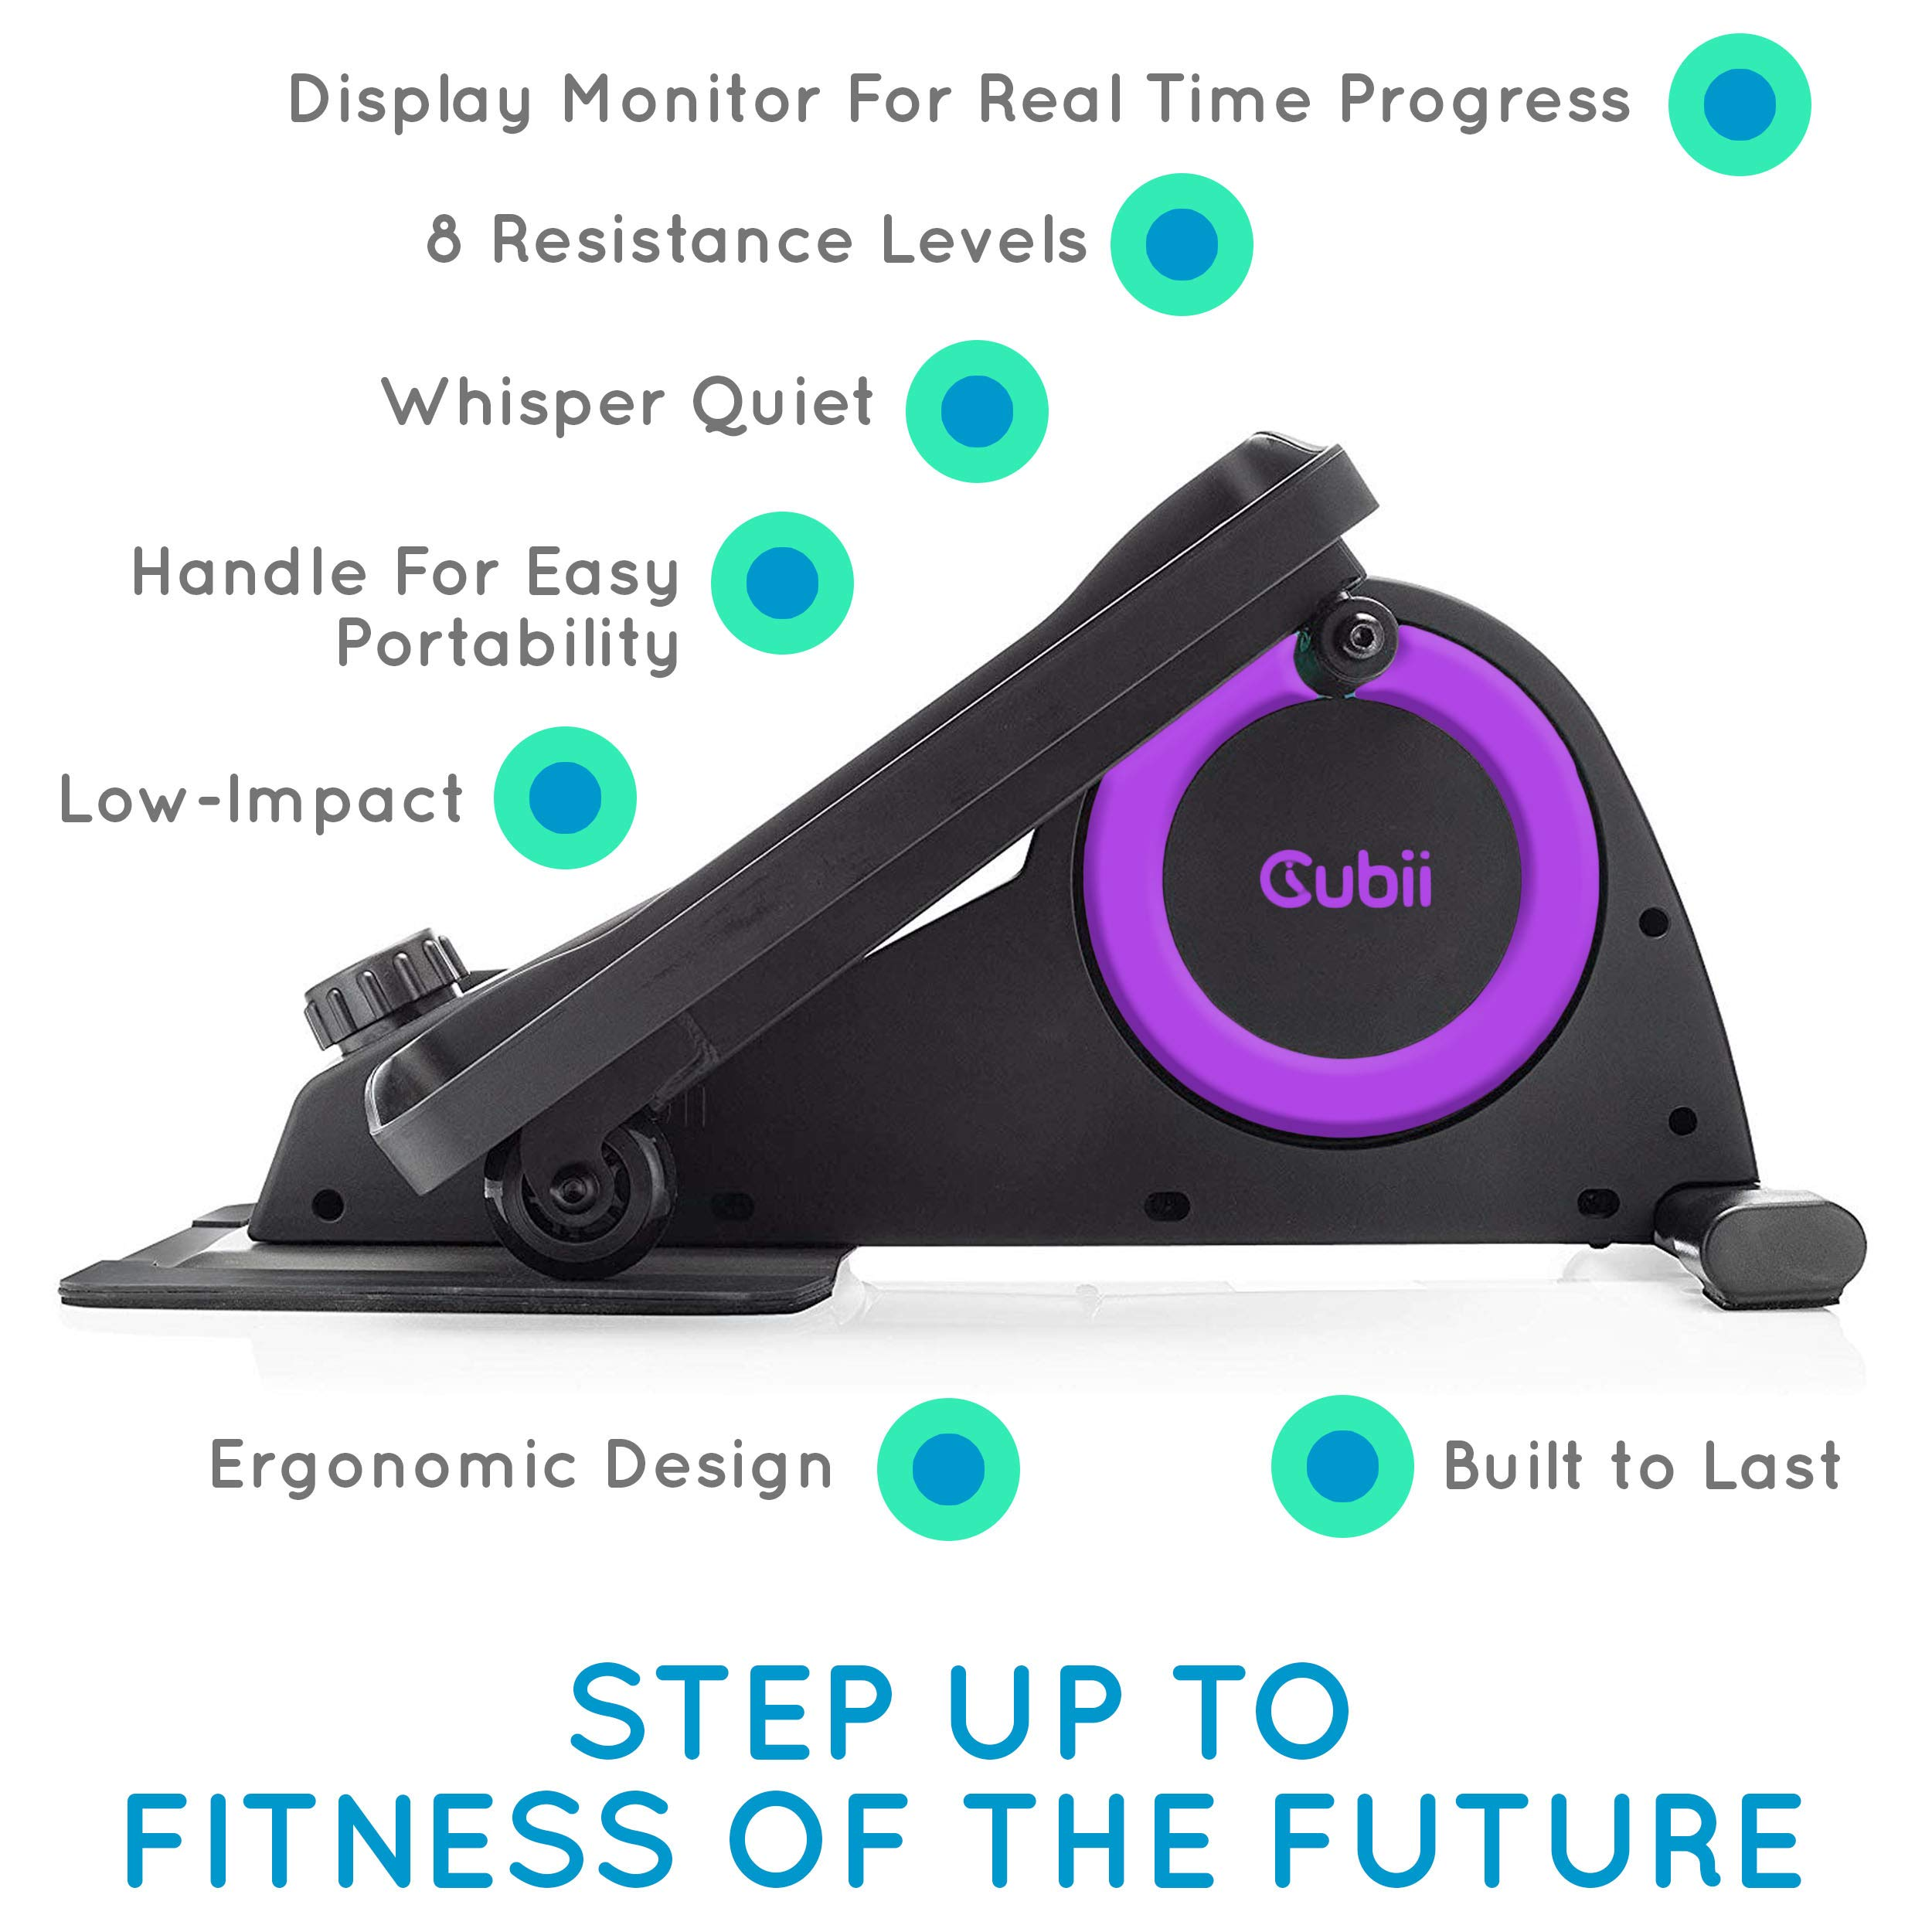 Cubii Jr: Desk Elliptical w/Built in Display Monitor, Easy Assembly, Quiet & Compact, Adjustable Resistance (Purple, One) by Cubii (Image #2)